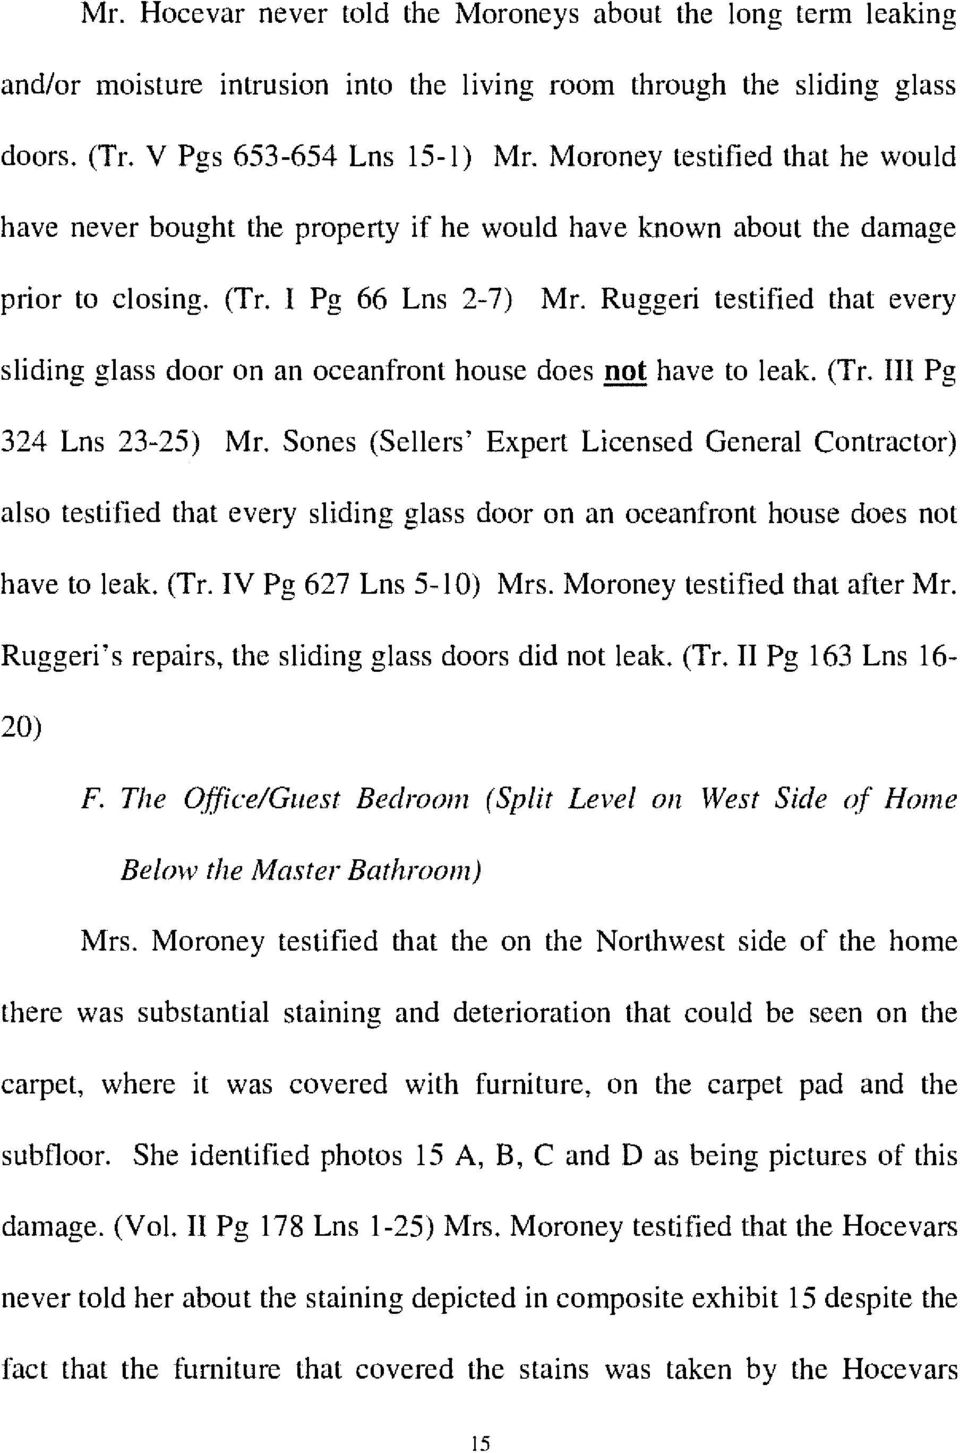 Ruggeri testified that every sliding glass door on an oceanfront house does have to leak. (Tr. III Pg 324 Lns 23-25) Mr.